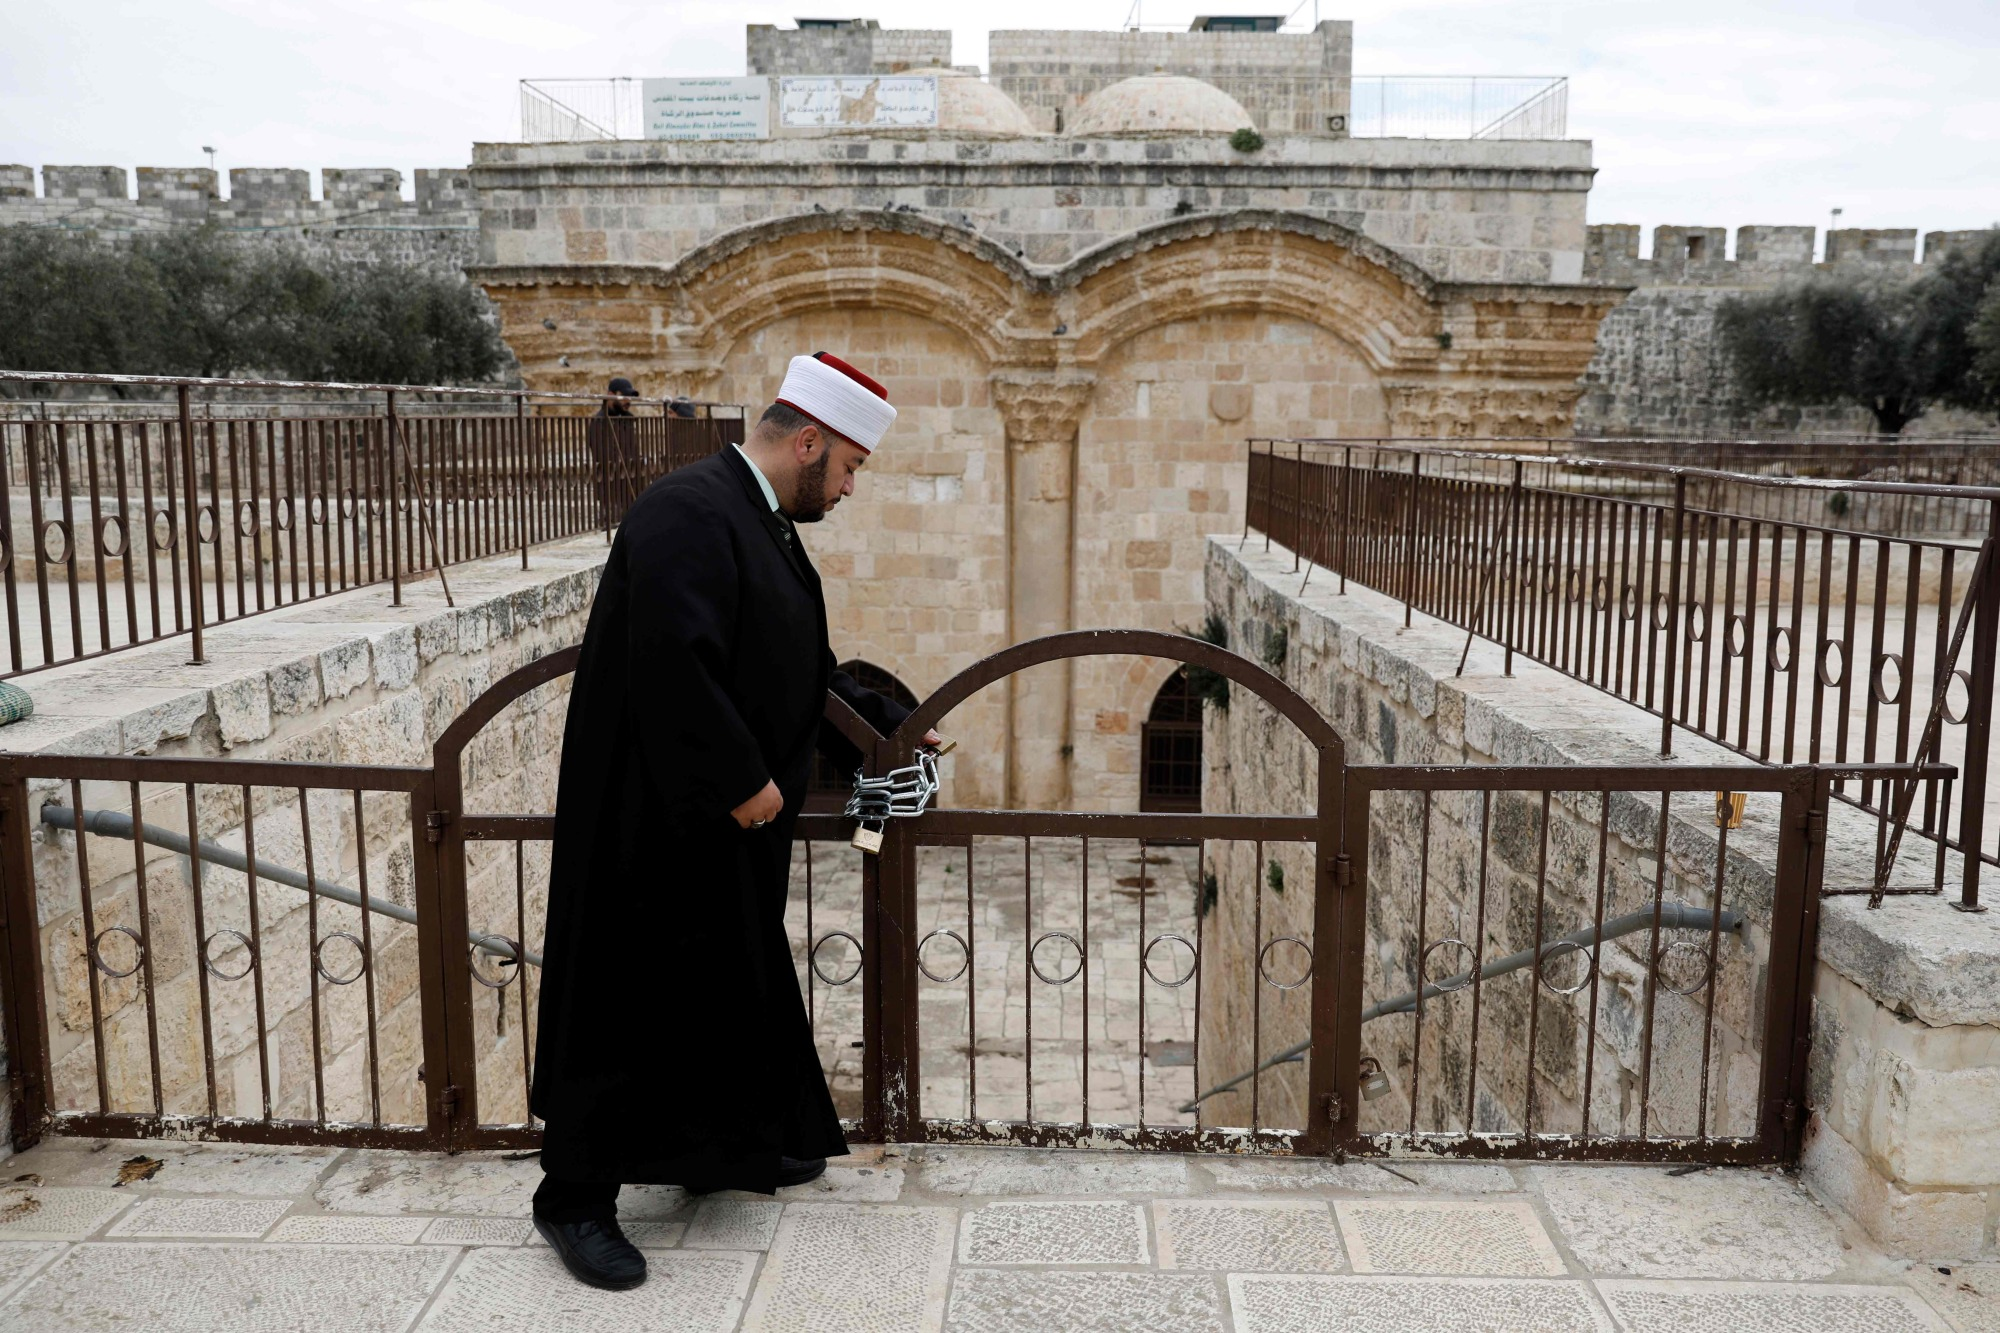 An Muslim cleric checks a gate, closed by Israeli Police, at the Al Aqsa mosque compound in Jerusalem's Old City on Feb. 18.   AFP-JIJI